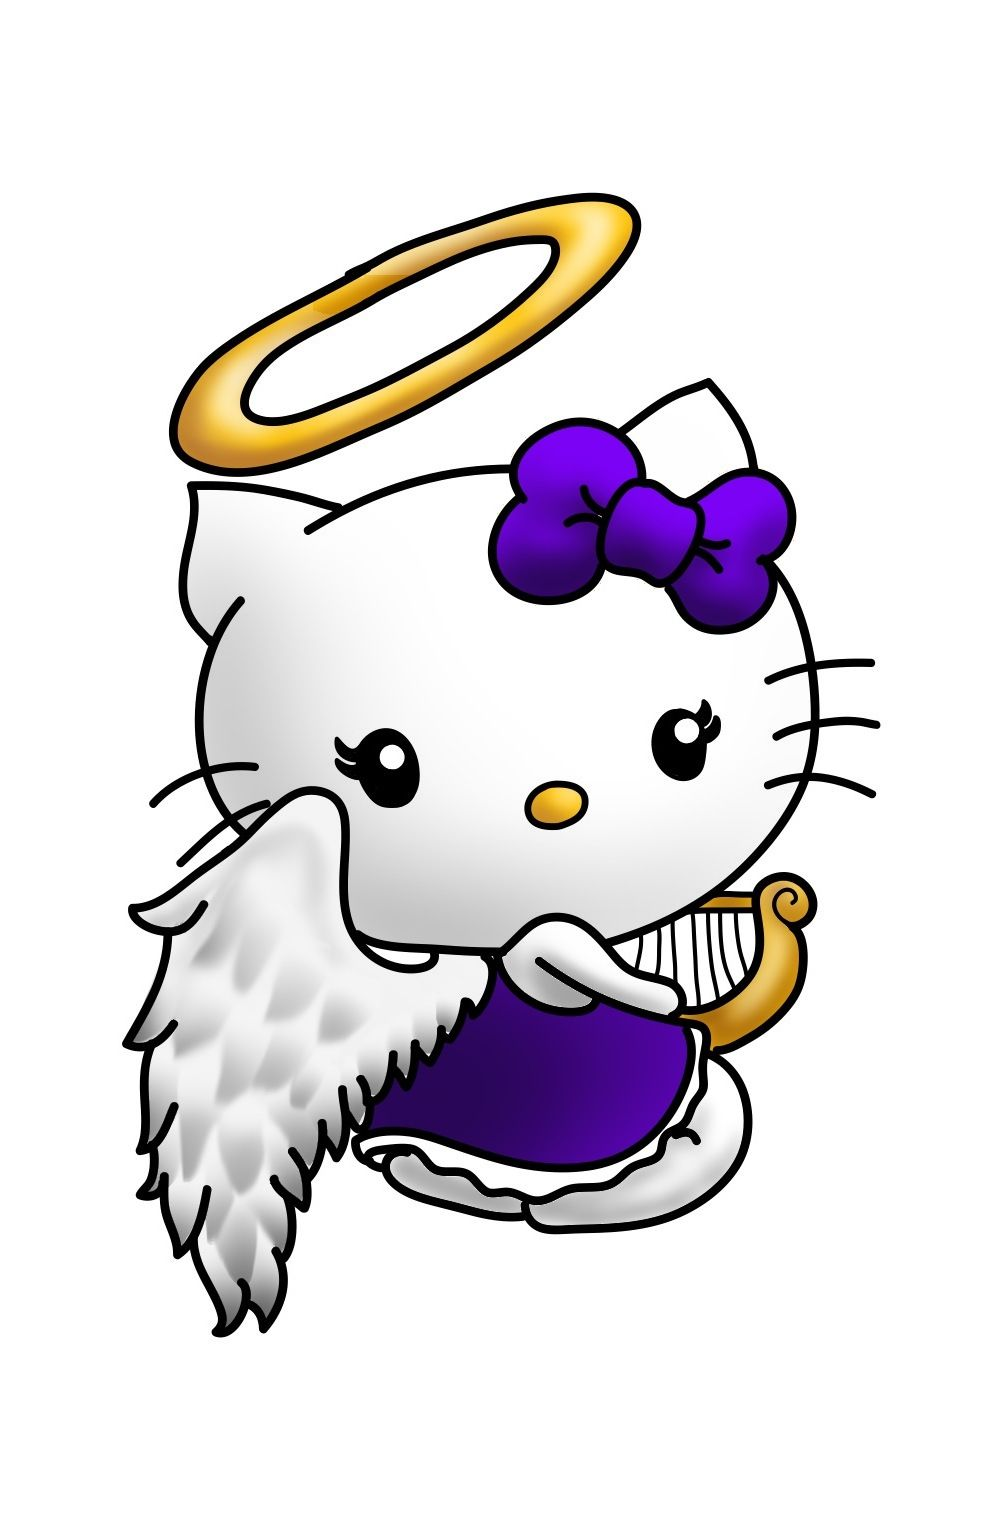 Hello Angel Kitty Hello Kitty Pictures Hello Kitty Characters Hello Kitty Images